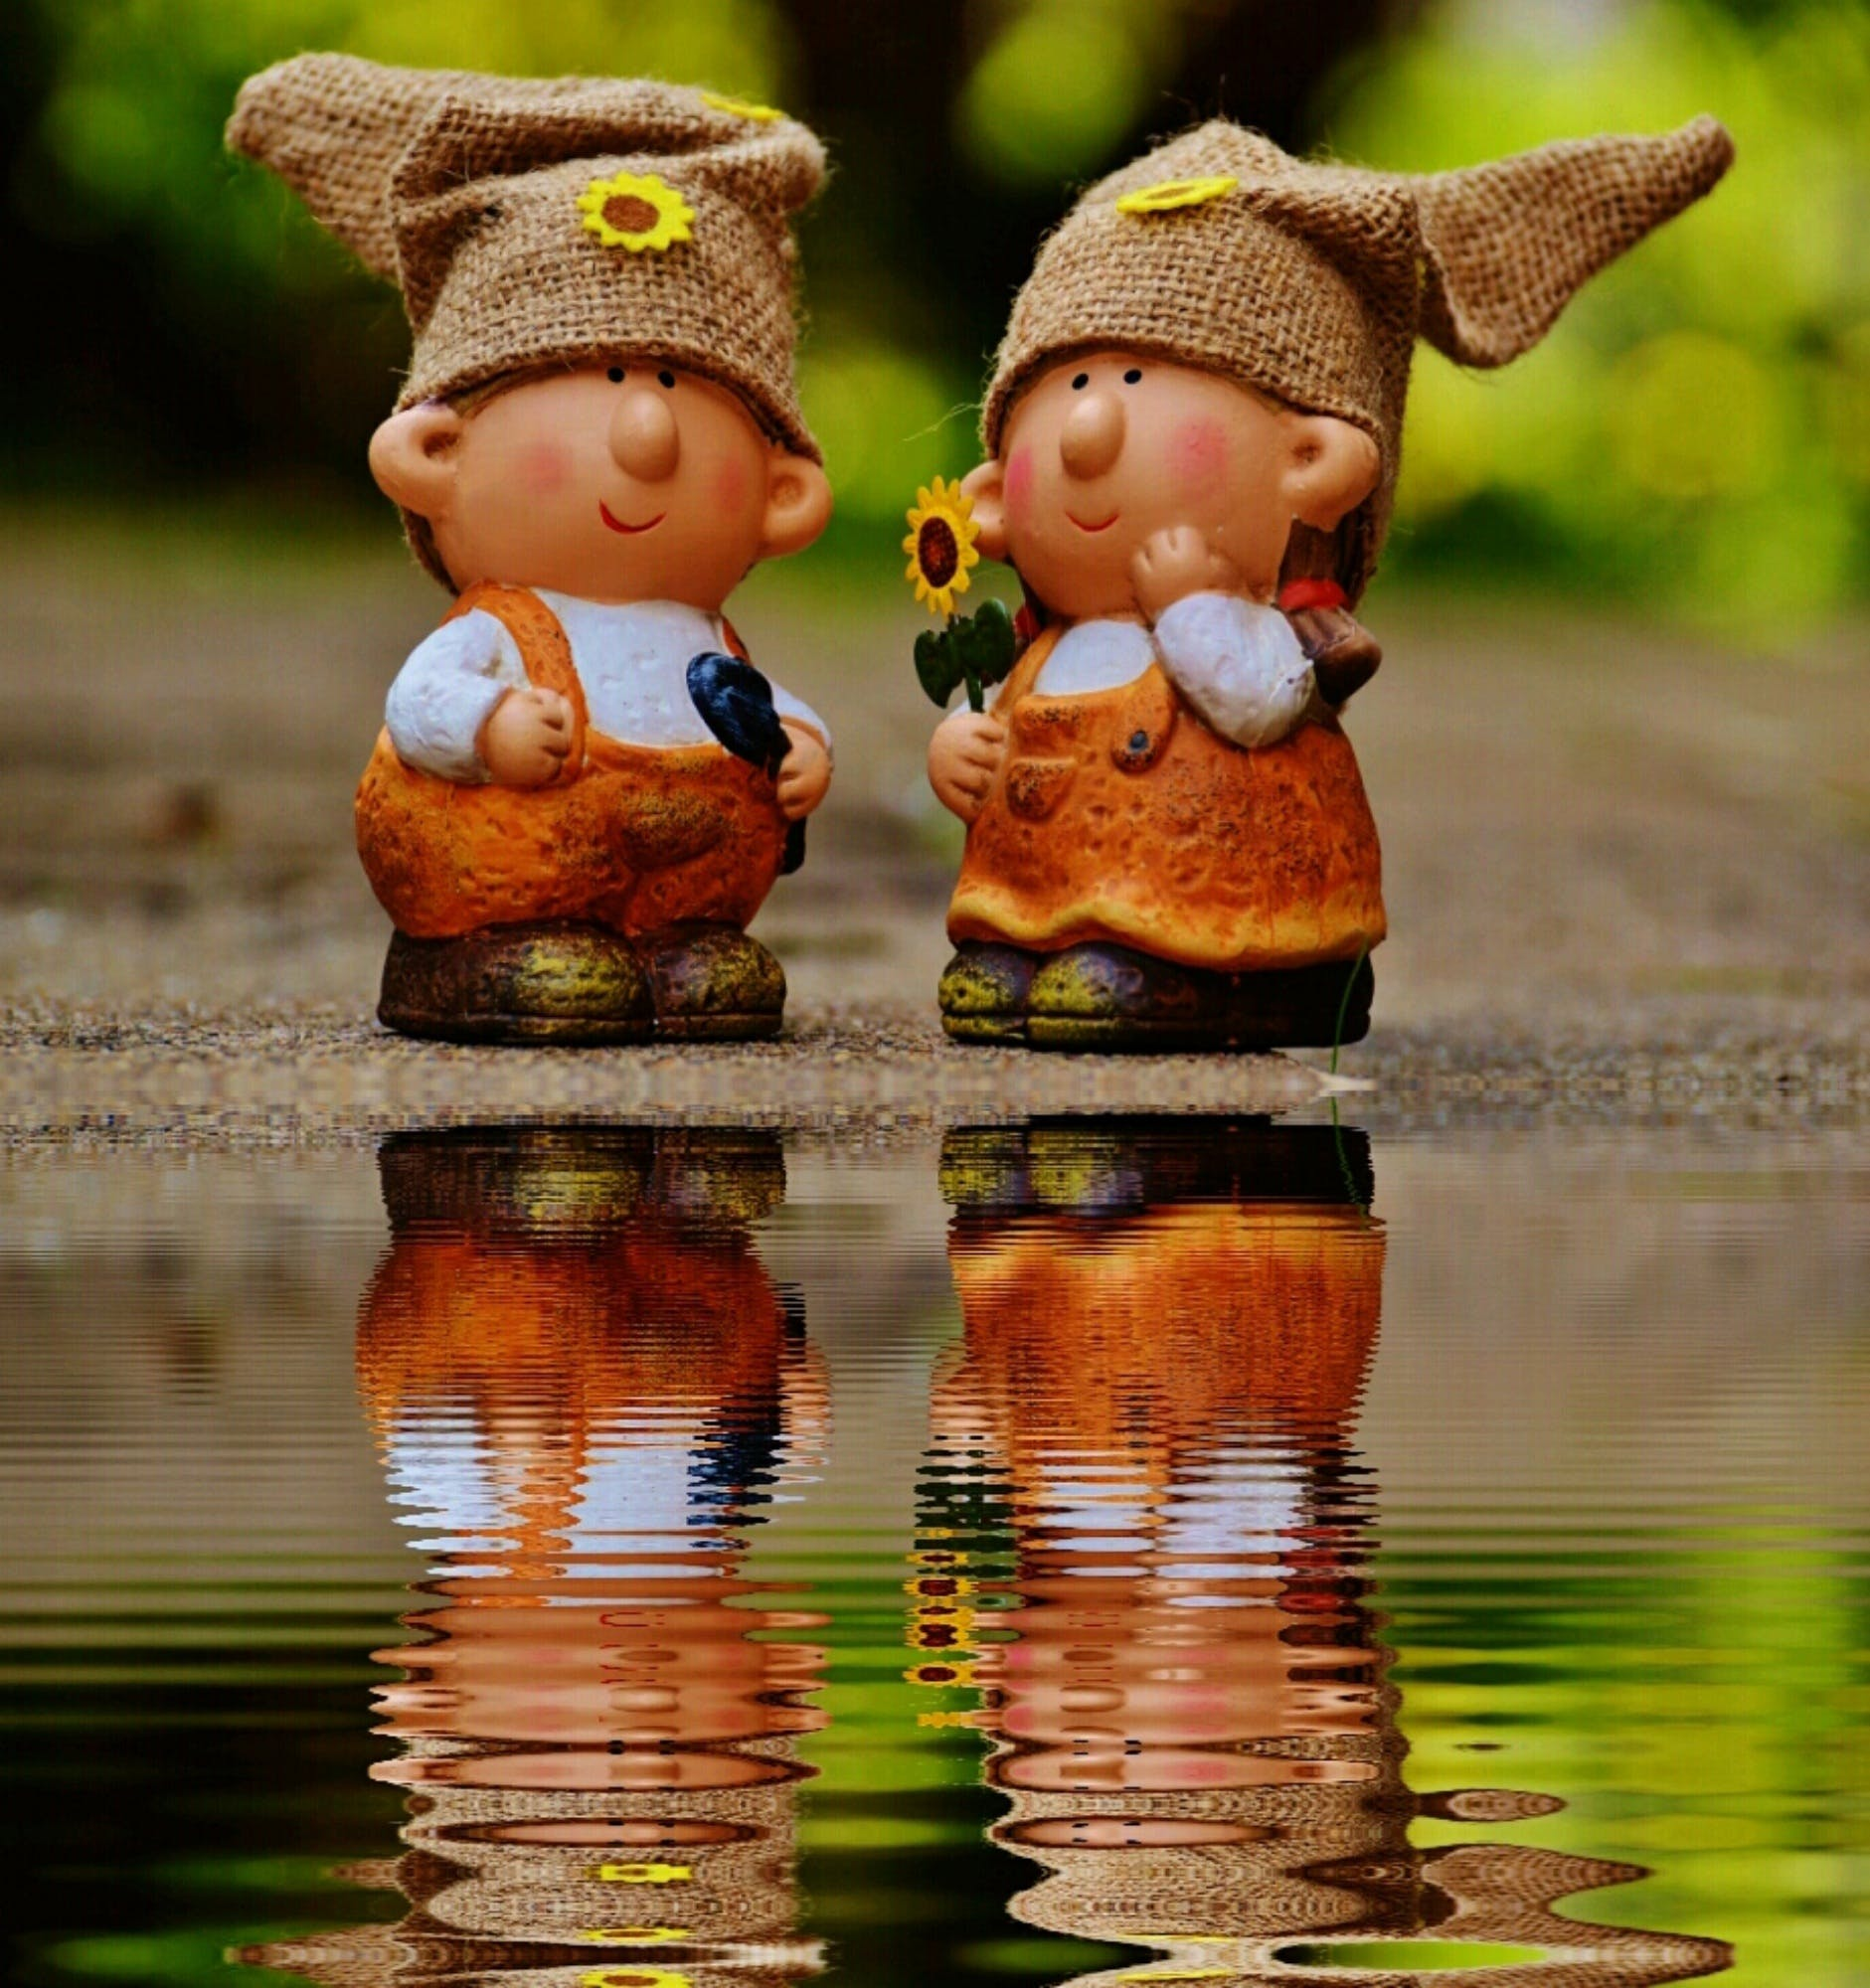 Girl and Boy Figurines Facing Each Other Near Body of Water